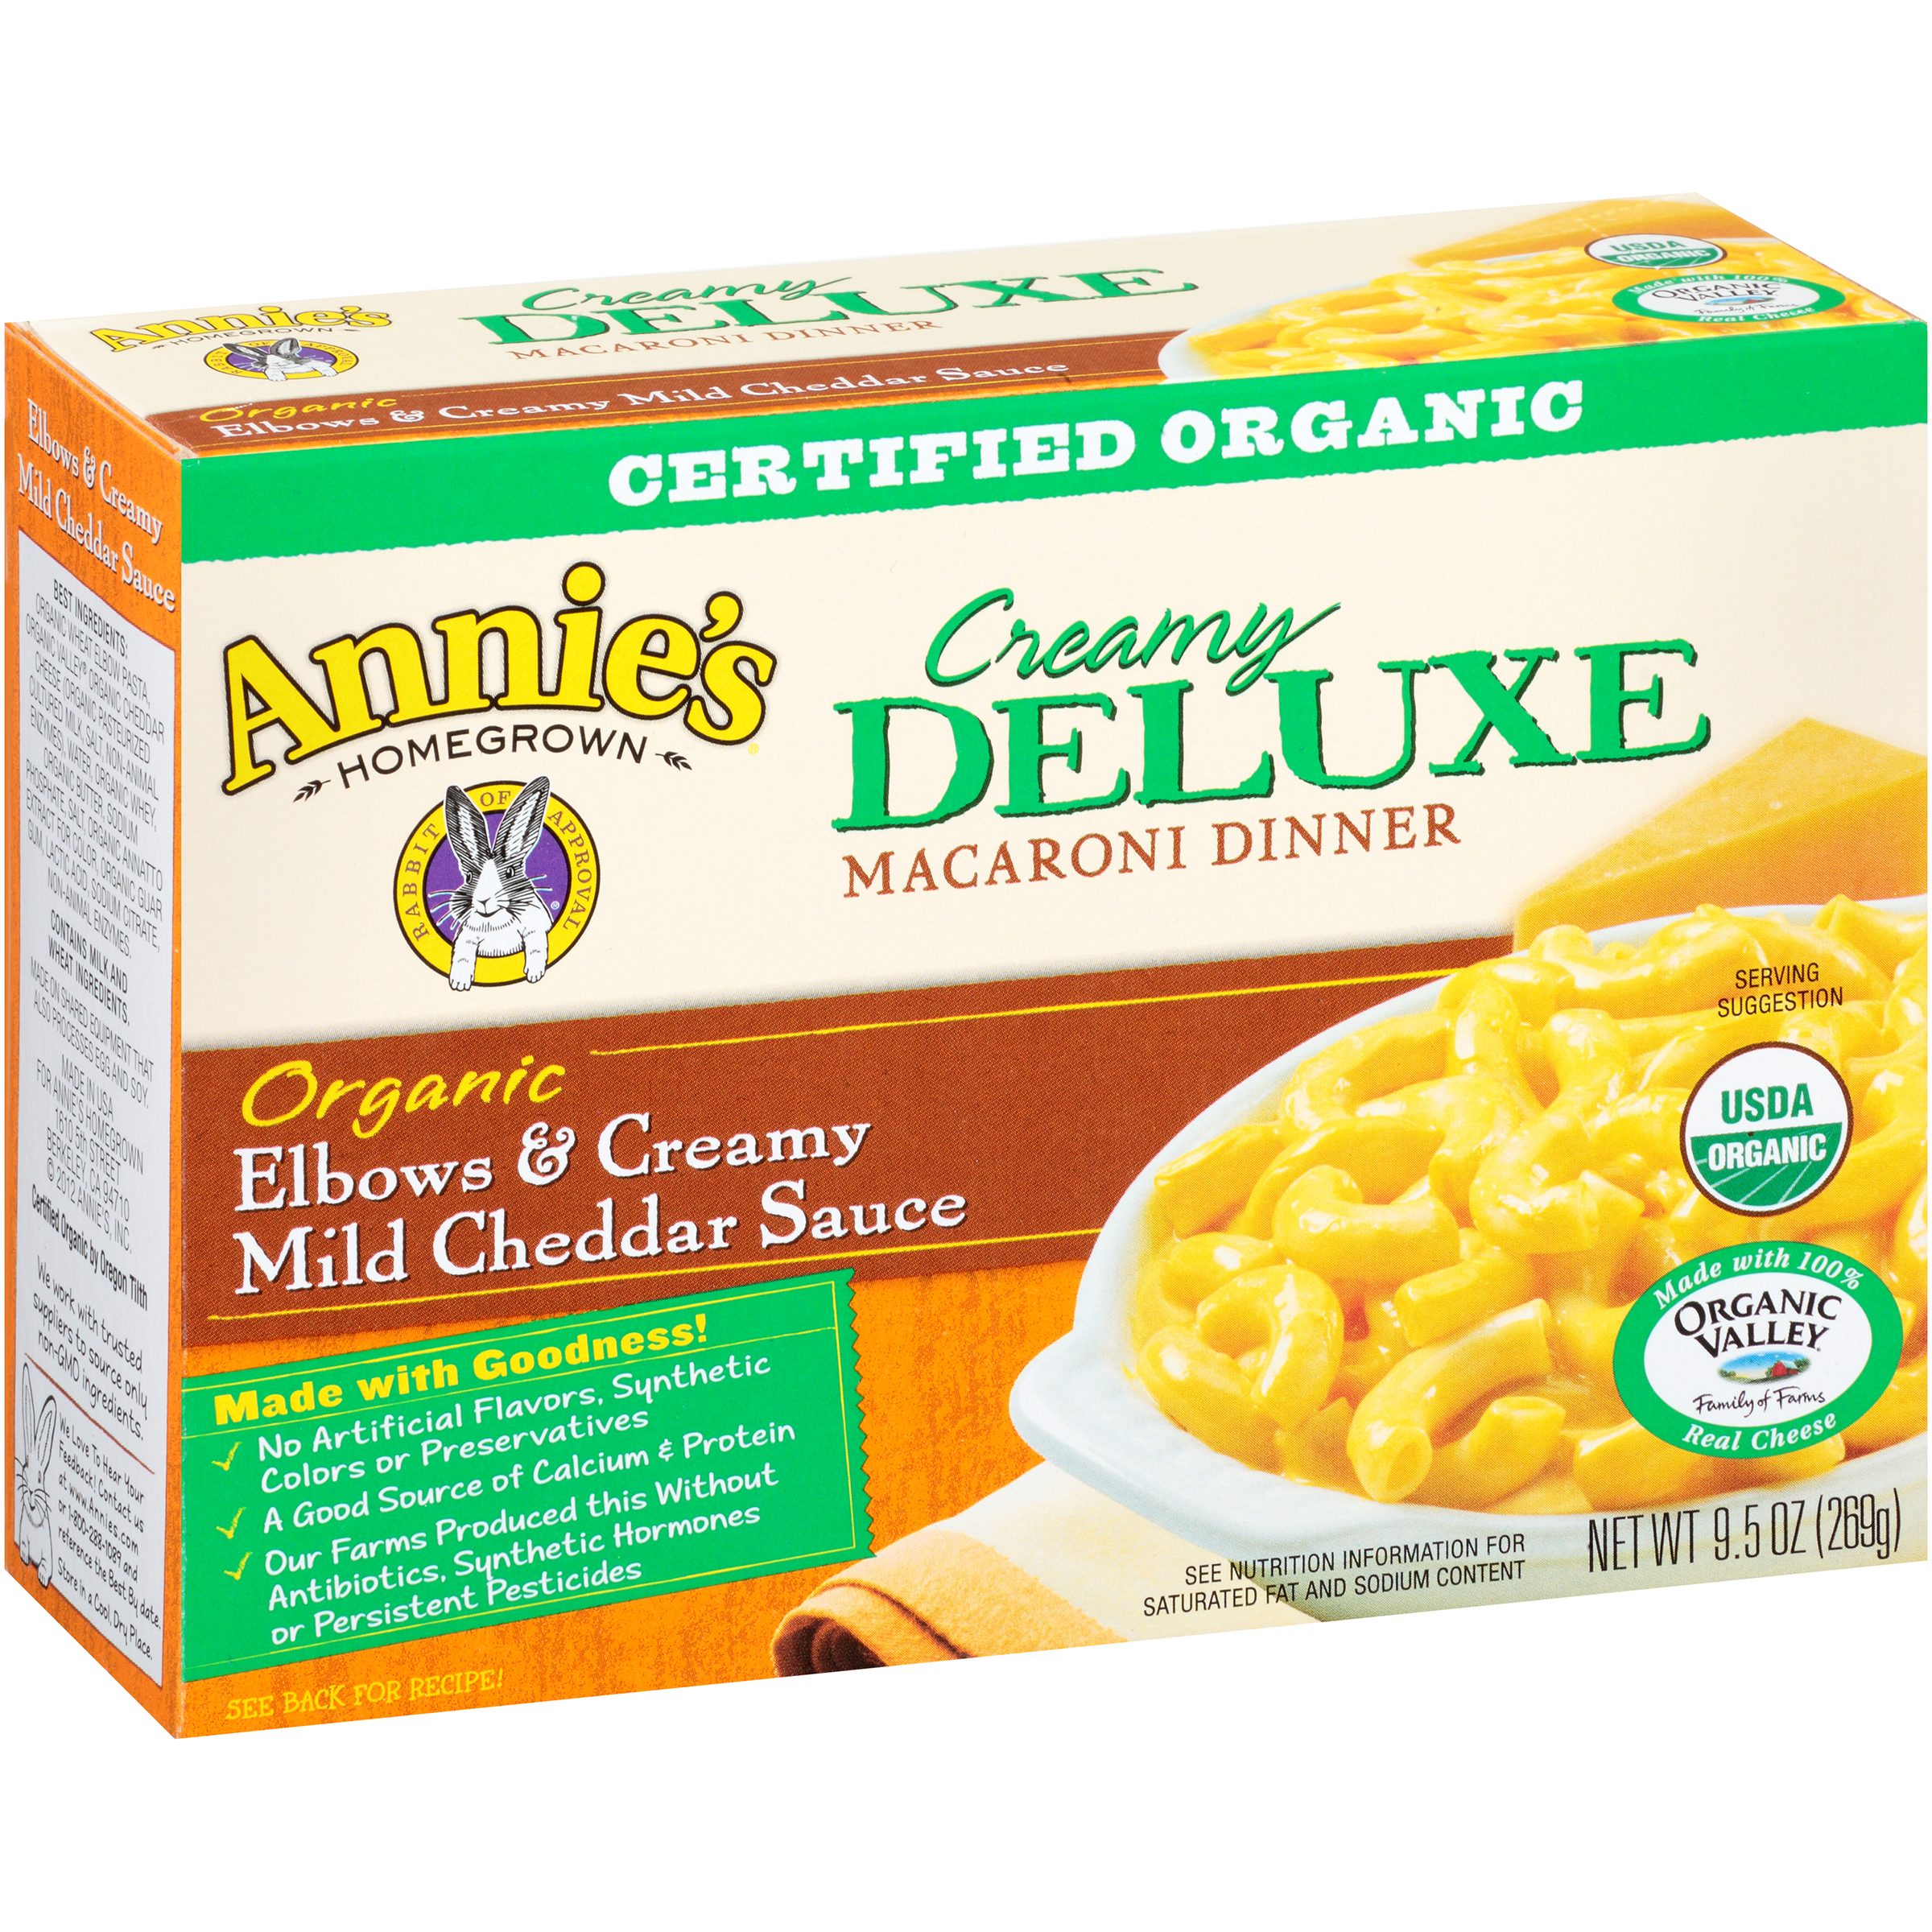 Annie's�� Creamy Deluxe Elbows & Creamy Mild Cheddar Cheese Sauce Macaroni Dinner 9.5 oz. Box